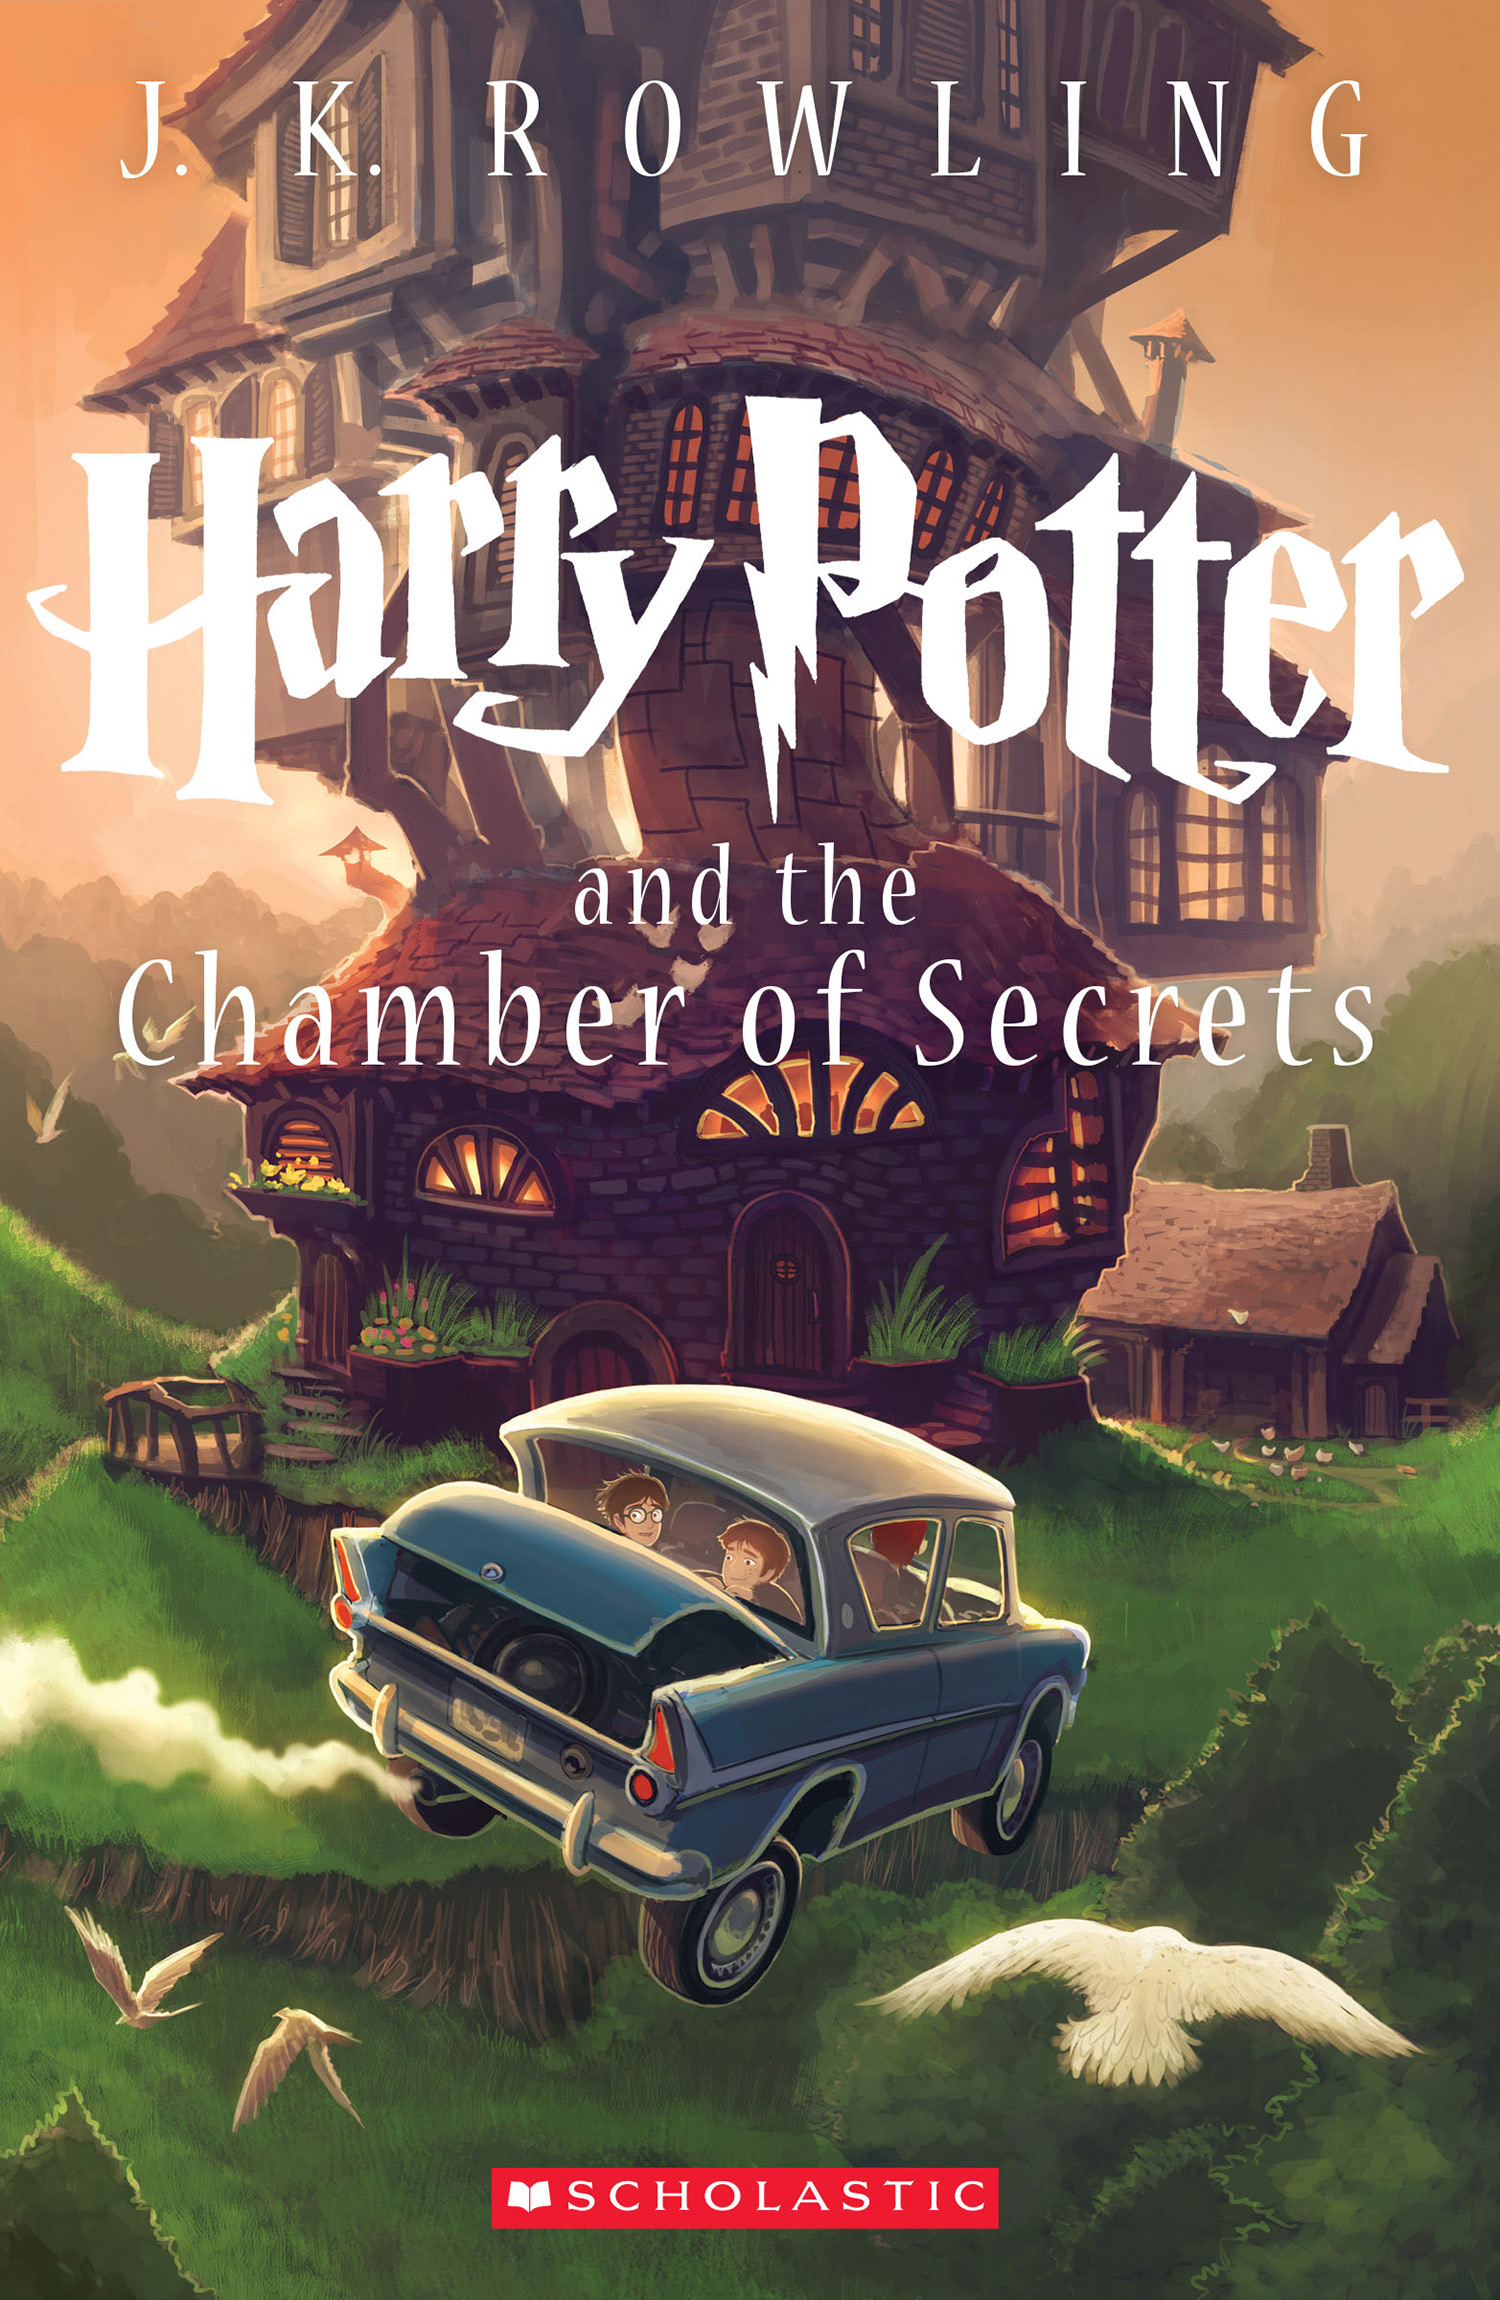 'Chamber of Secrets' US children's edition (2013)